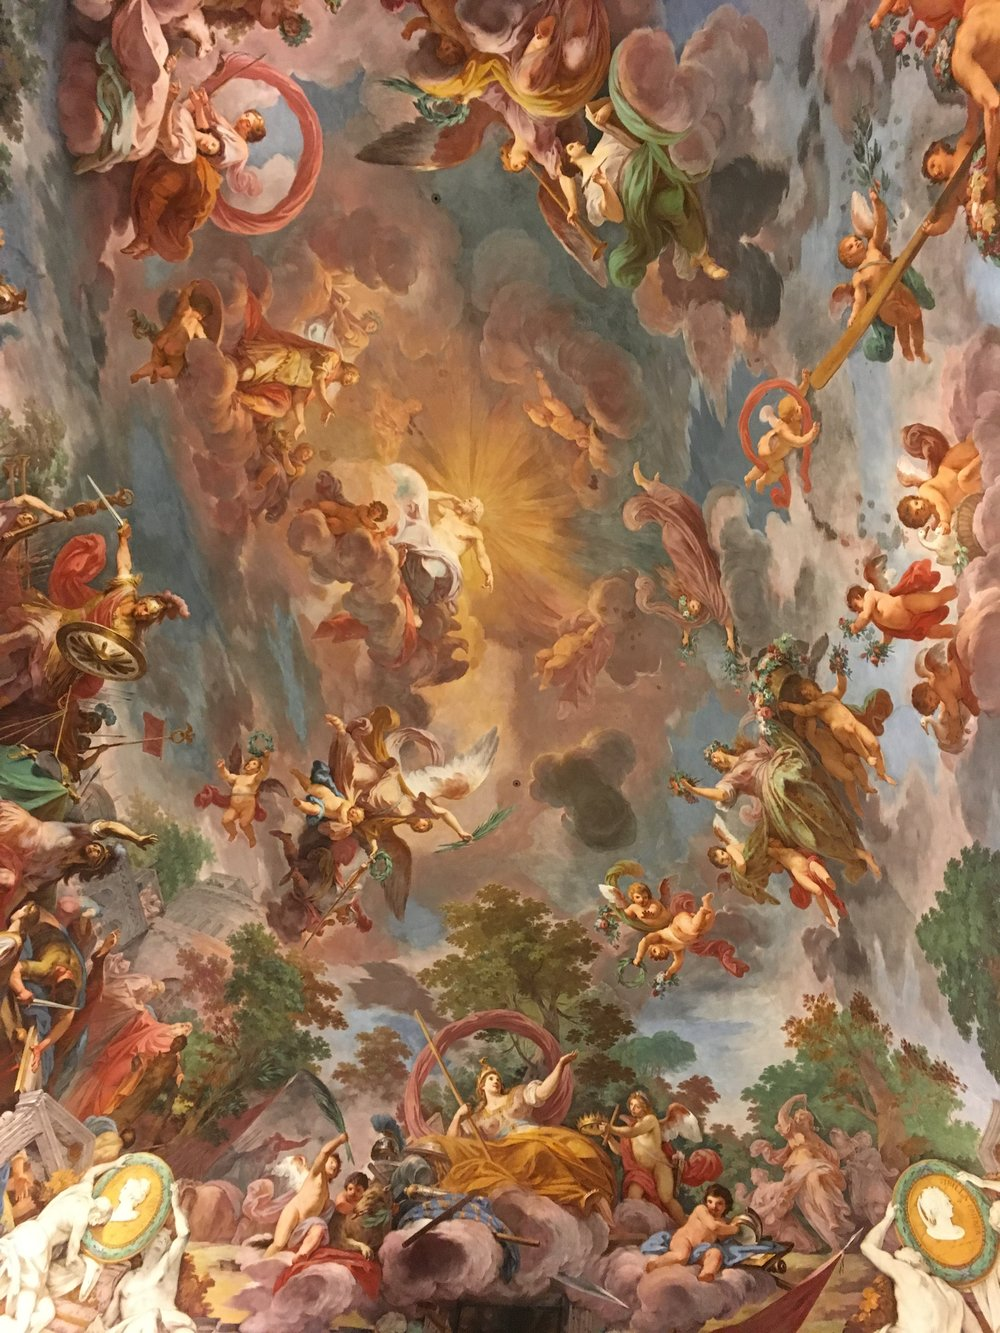 Ceiling Frescos in the Villa Borghese